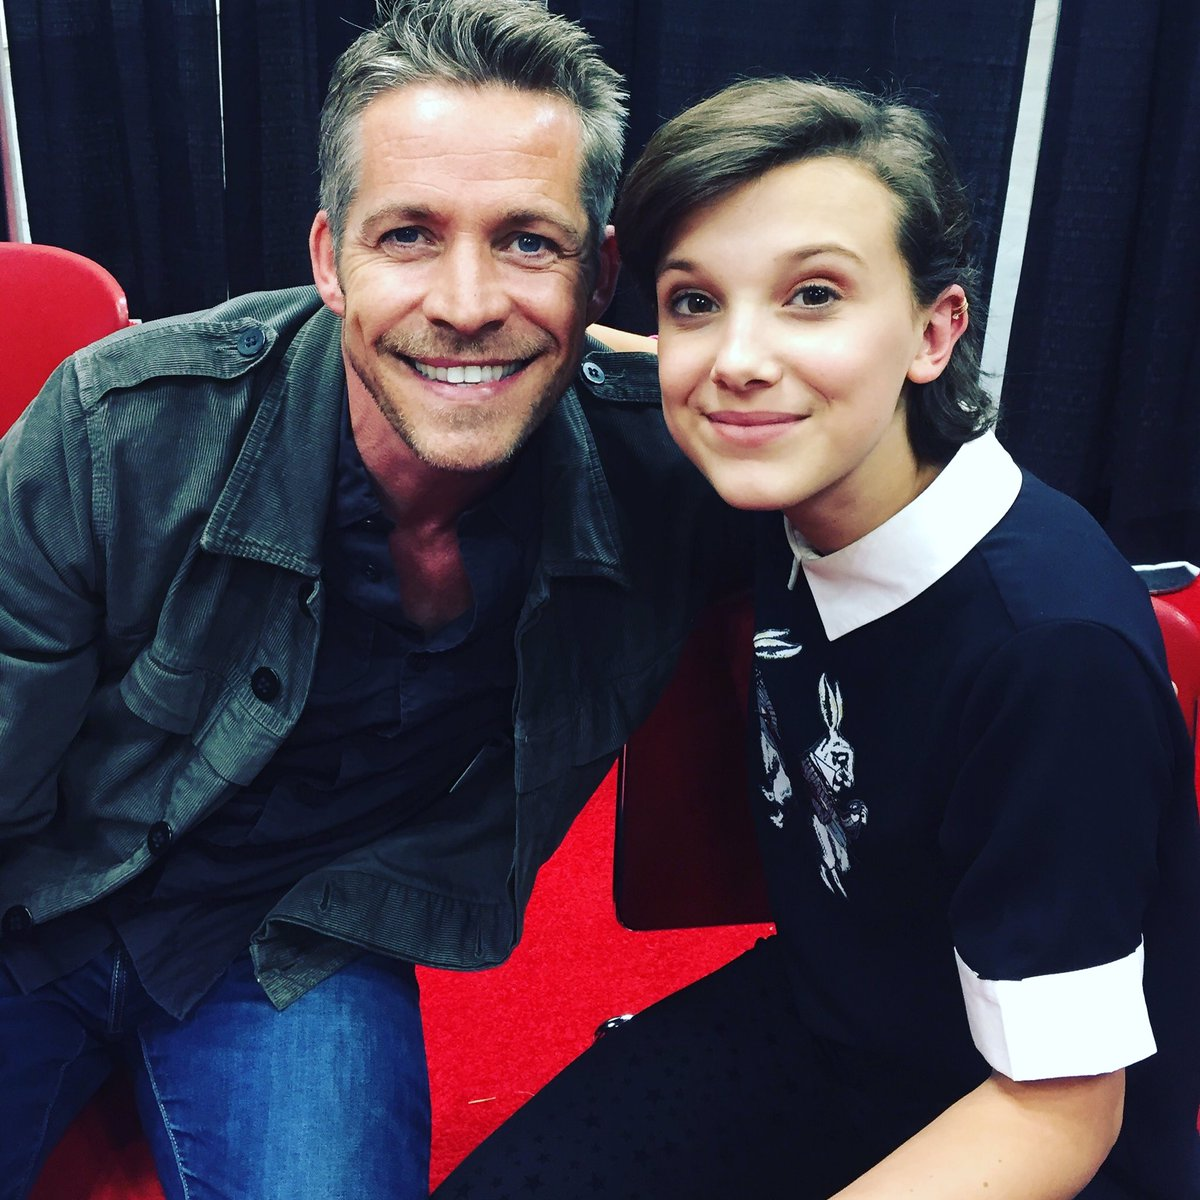 Sean Maguire On Twitter Loved Meeting Millie Bobby Brown Today